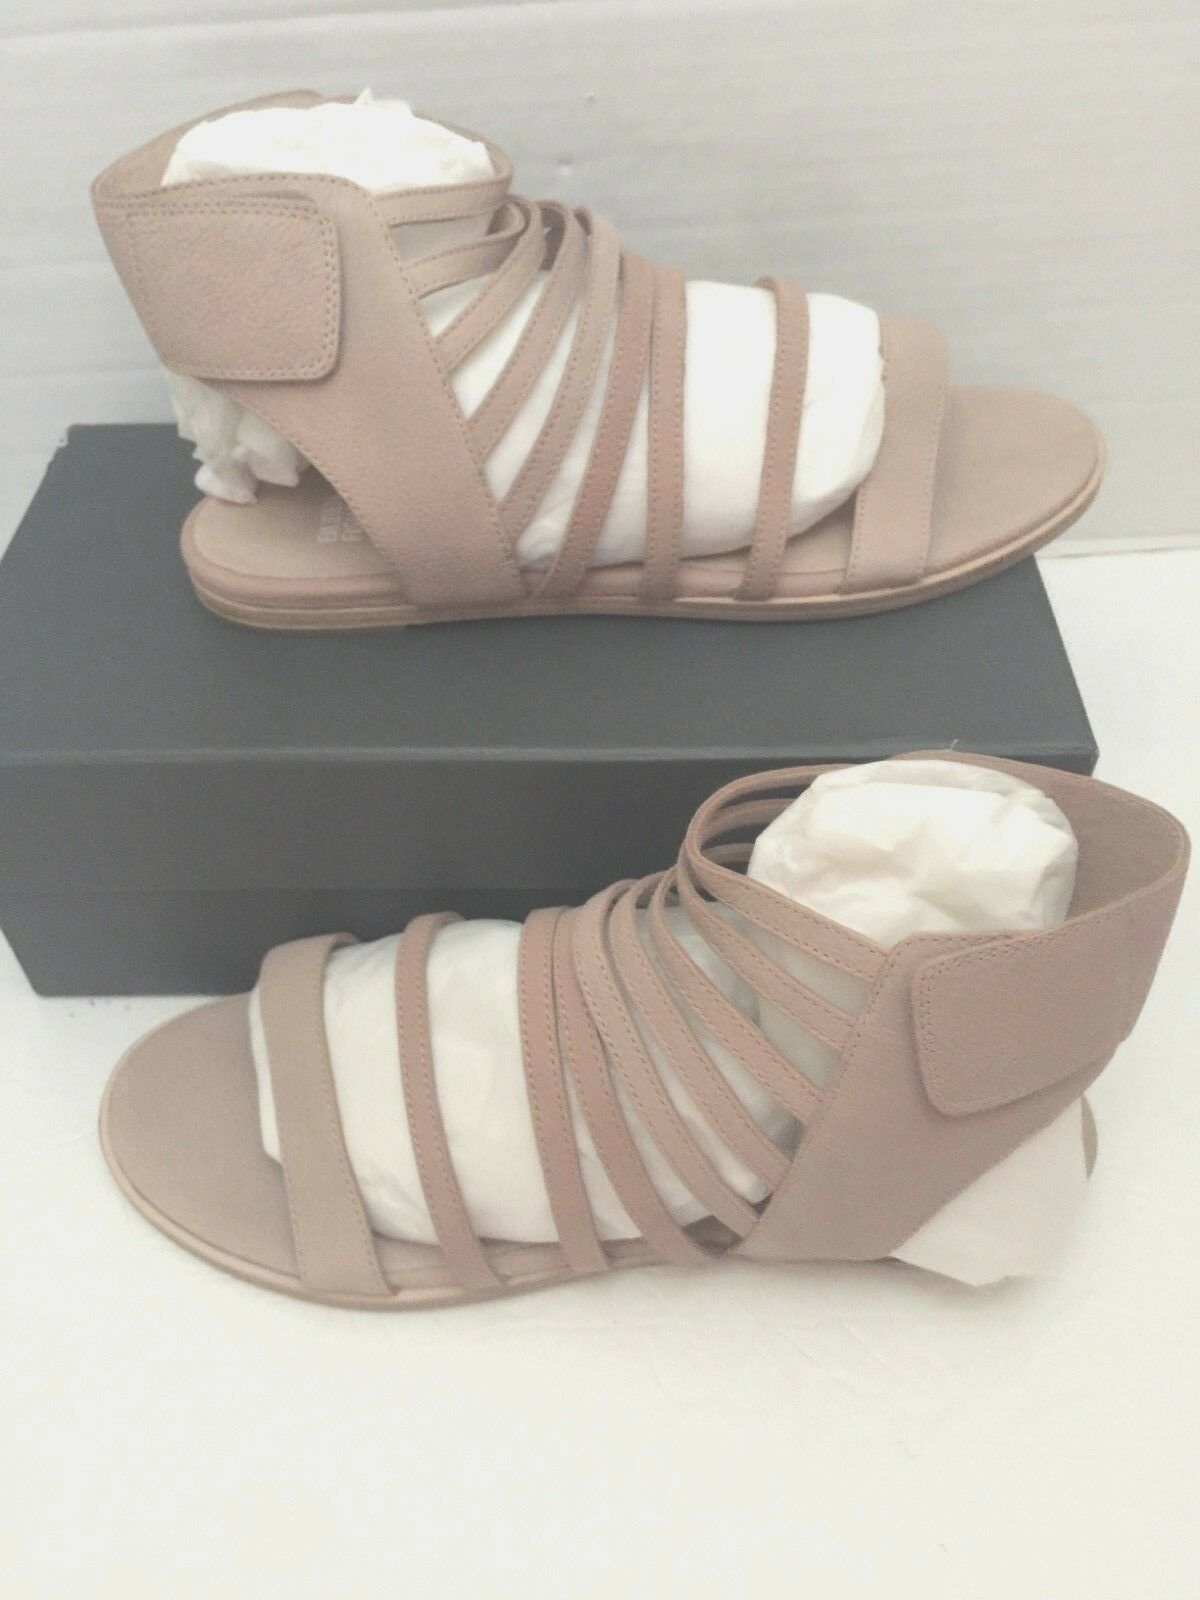 Eileen Fisher Otto Pebble Leather Strappy Gladiator Open Toe Sandals 10